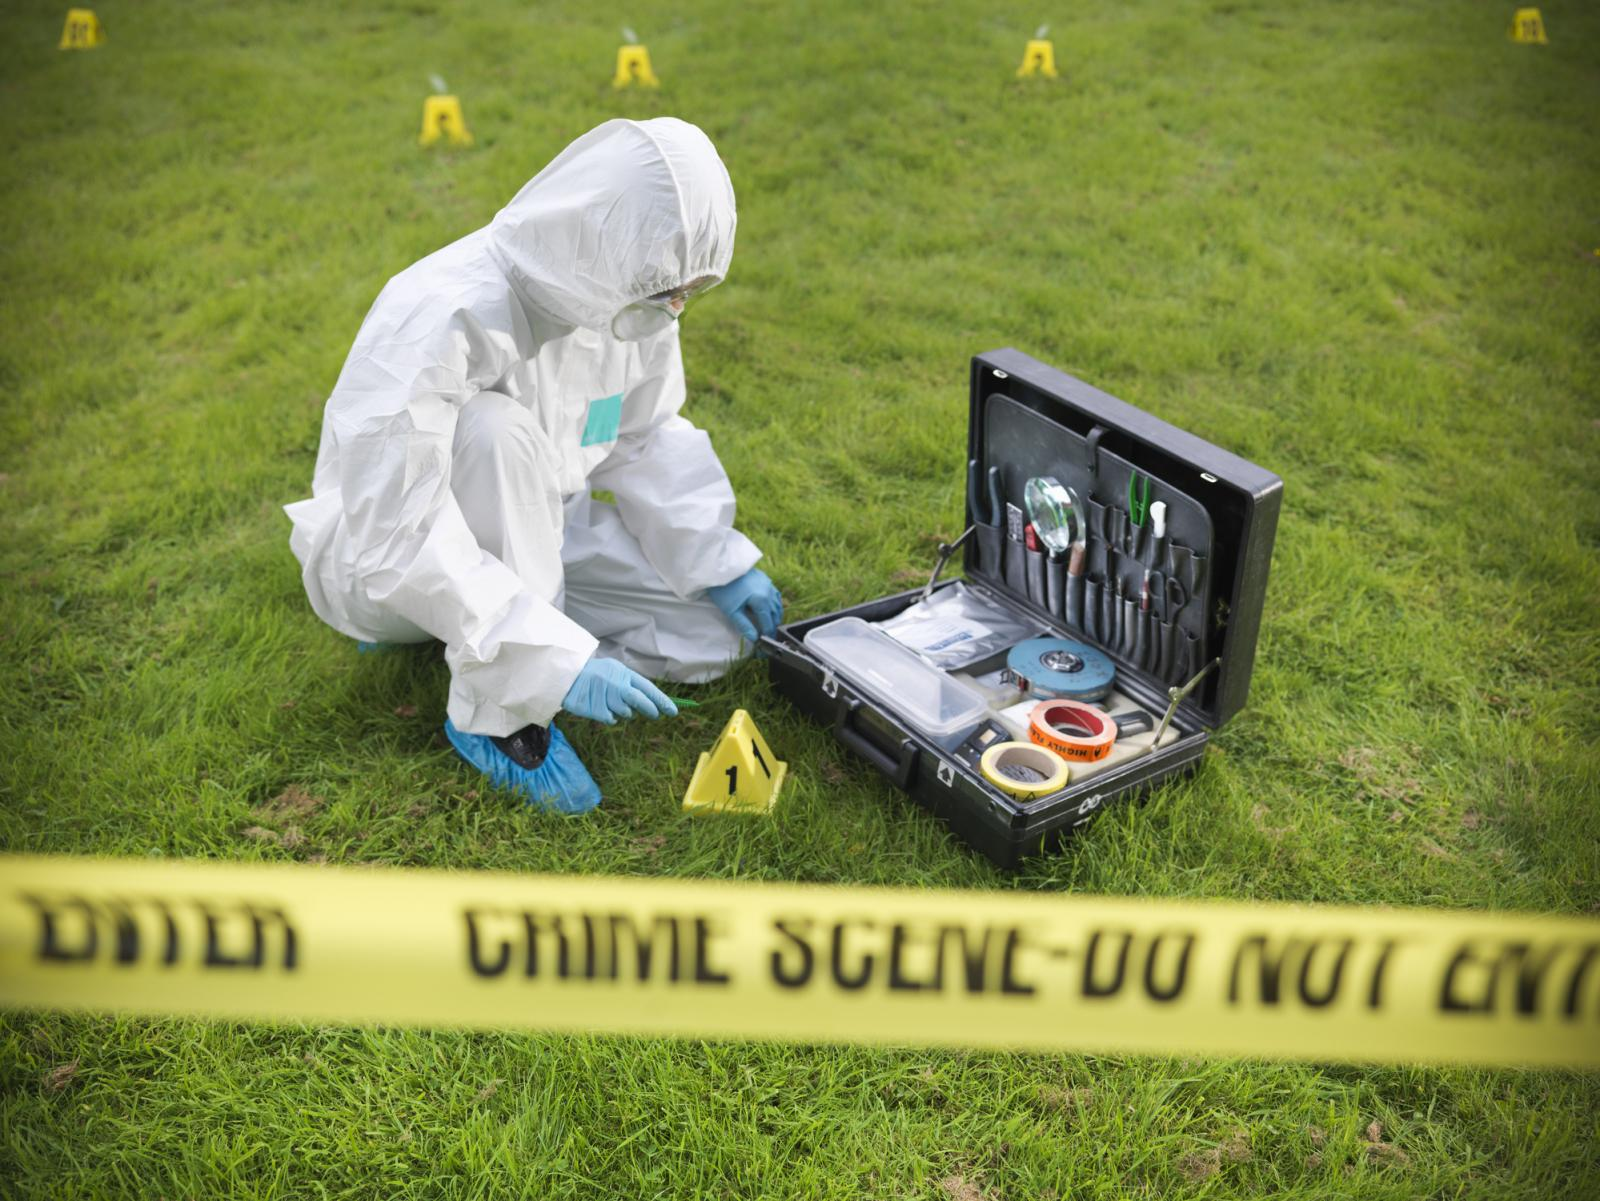 Forensic scientist inspecting toolkit at crime scene